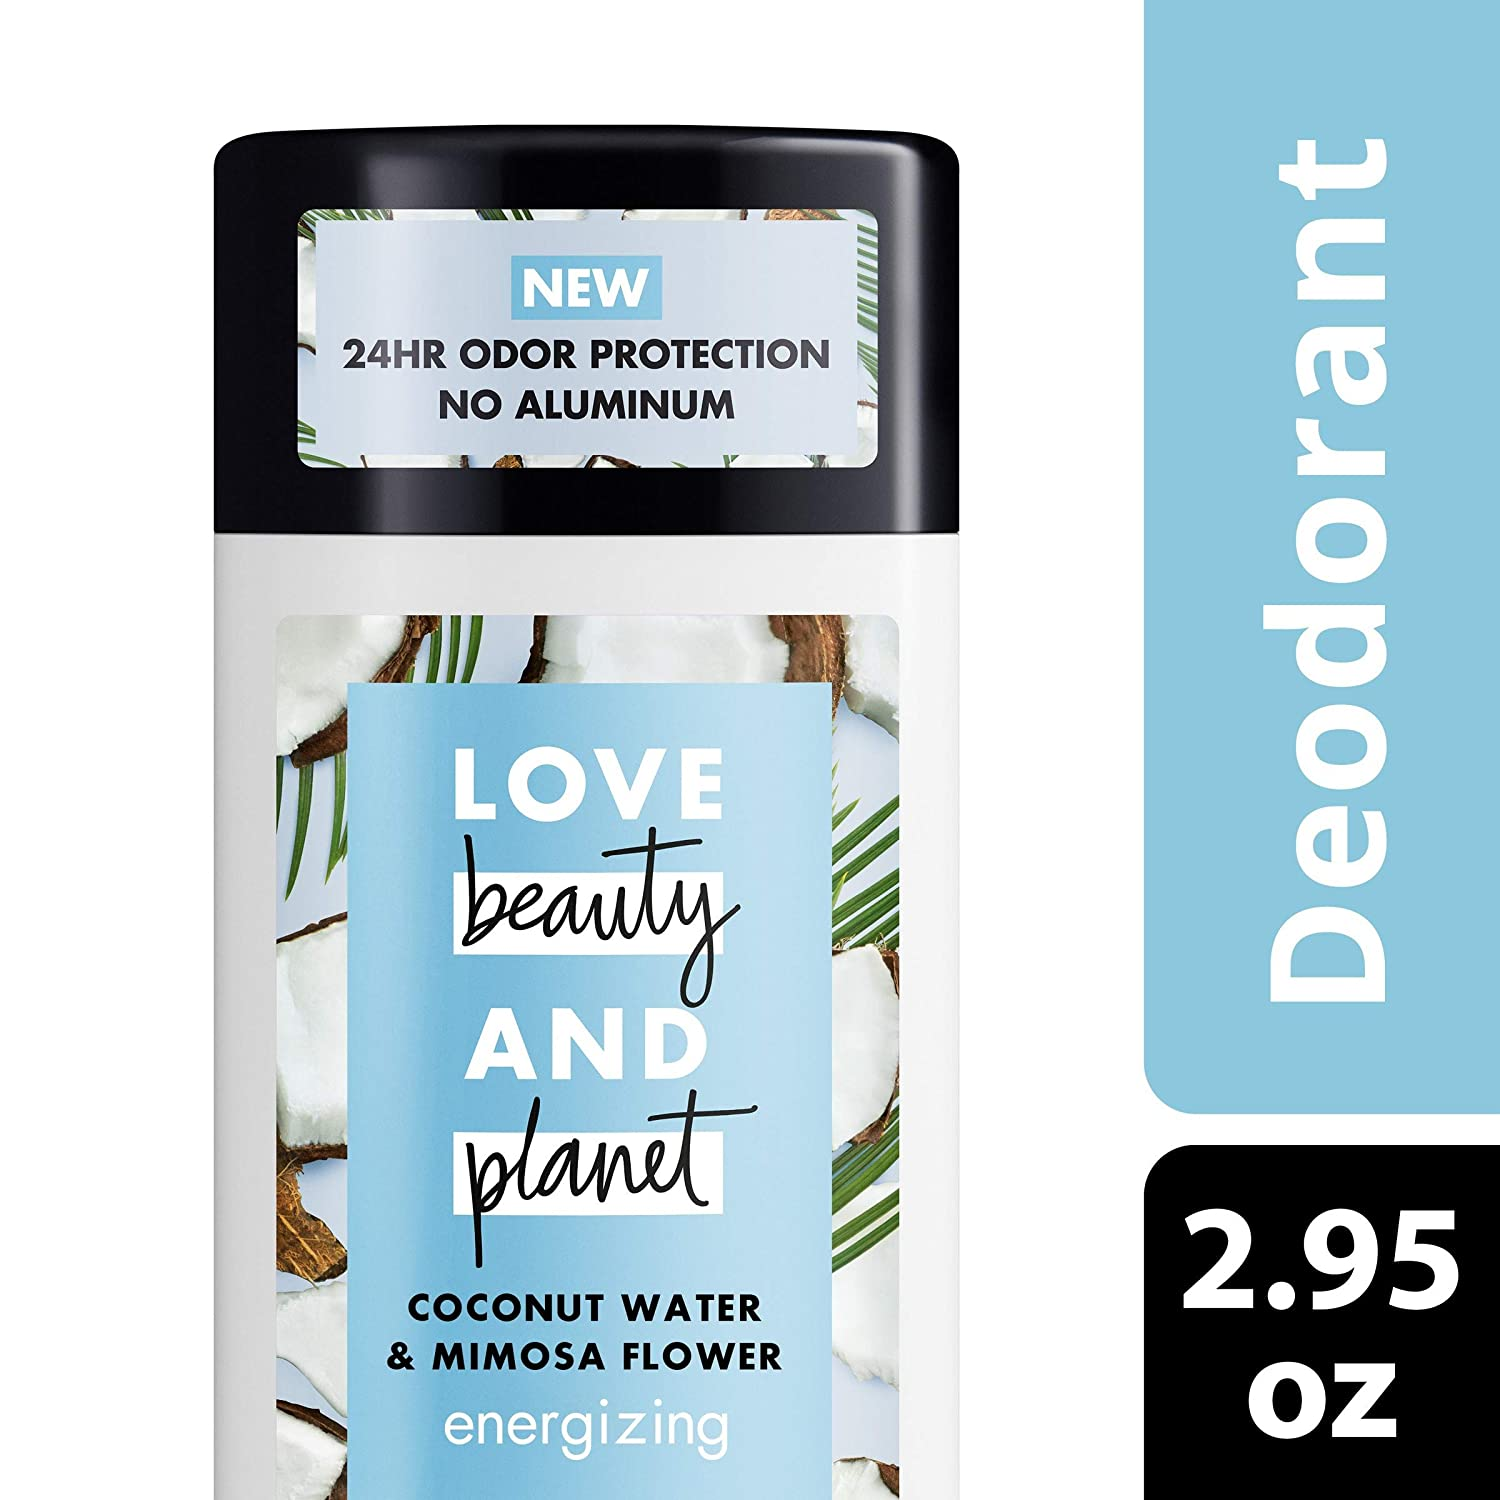 Love Beauty Planet Deodorant, Coconut Water and Mimosa Flower, 2 95 oz